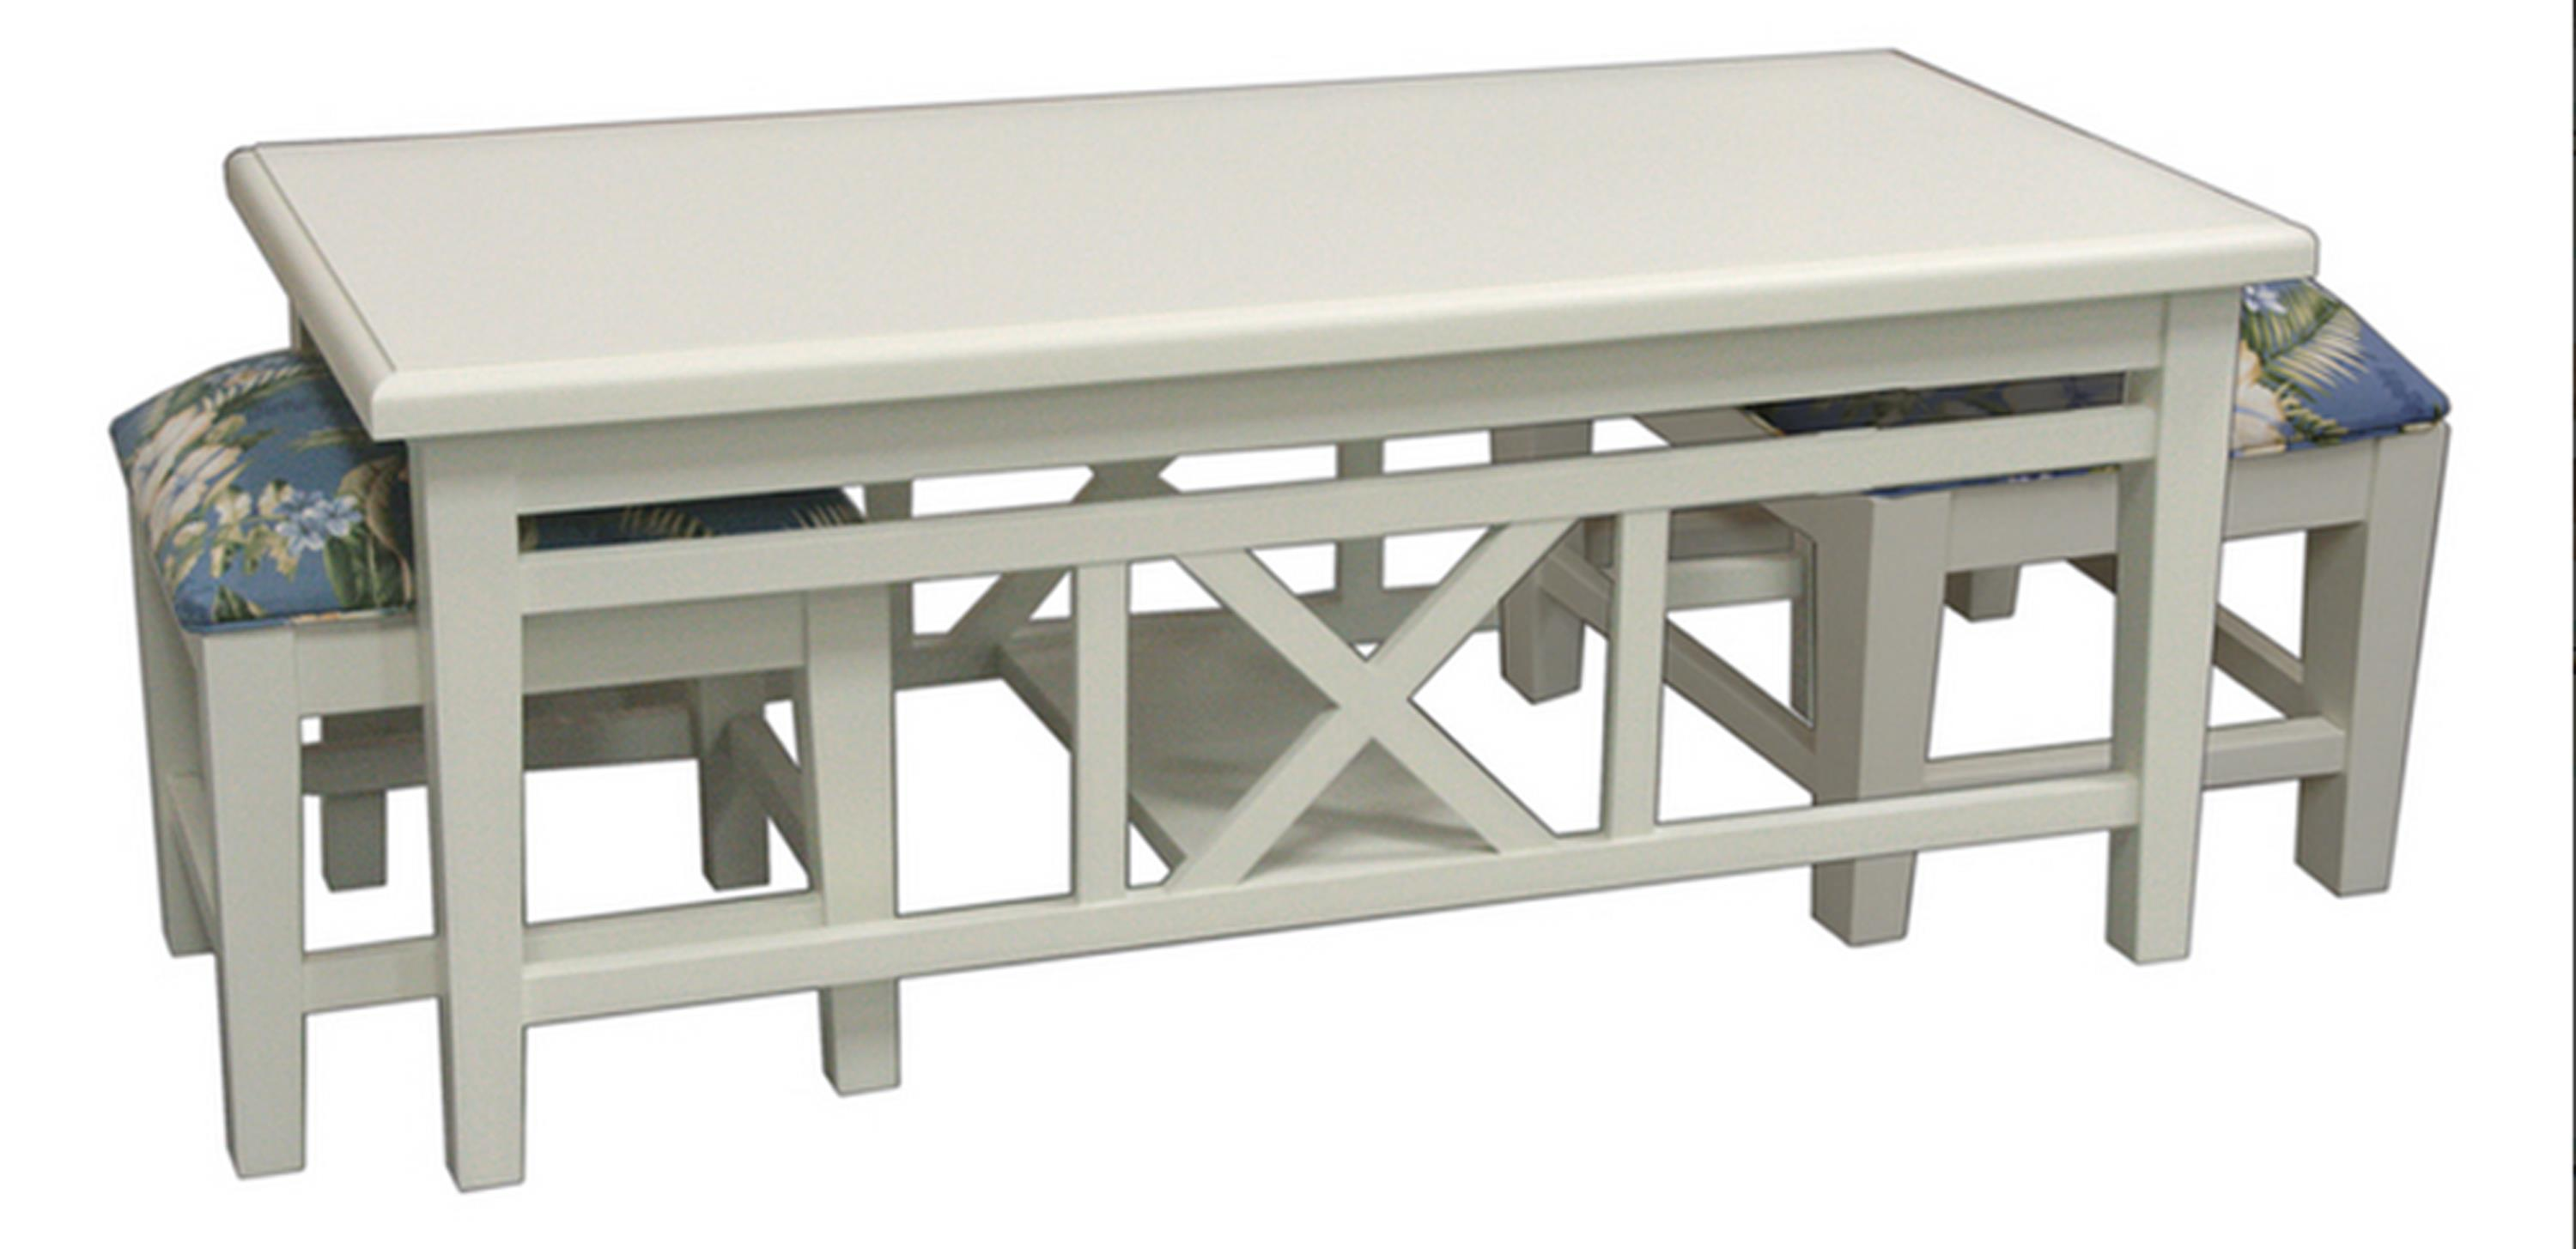 747 Hassock Coffee Table with Benches by Capris Furniture at Esprit Decor Home Furnishings